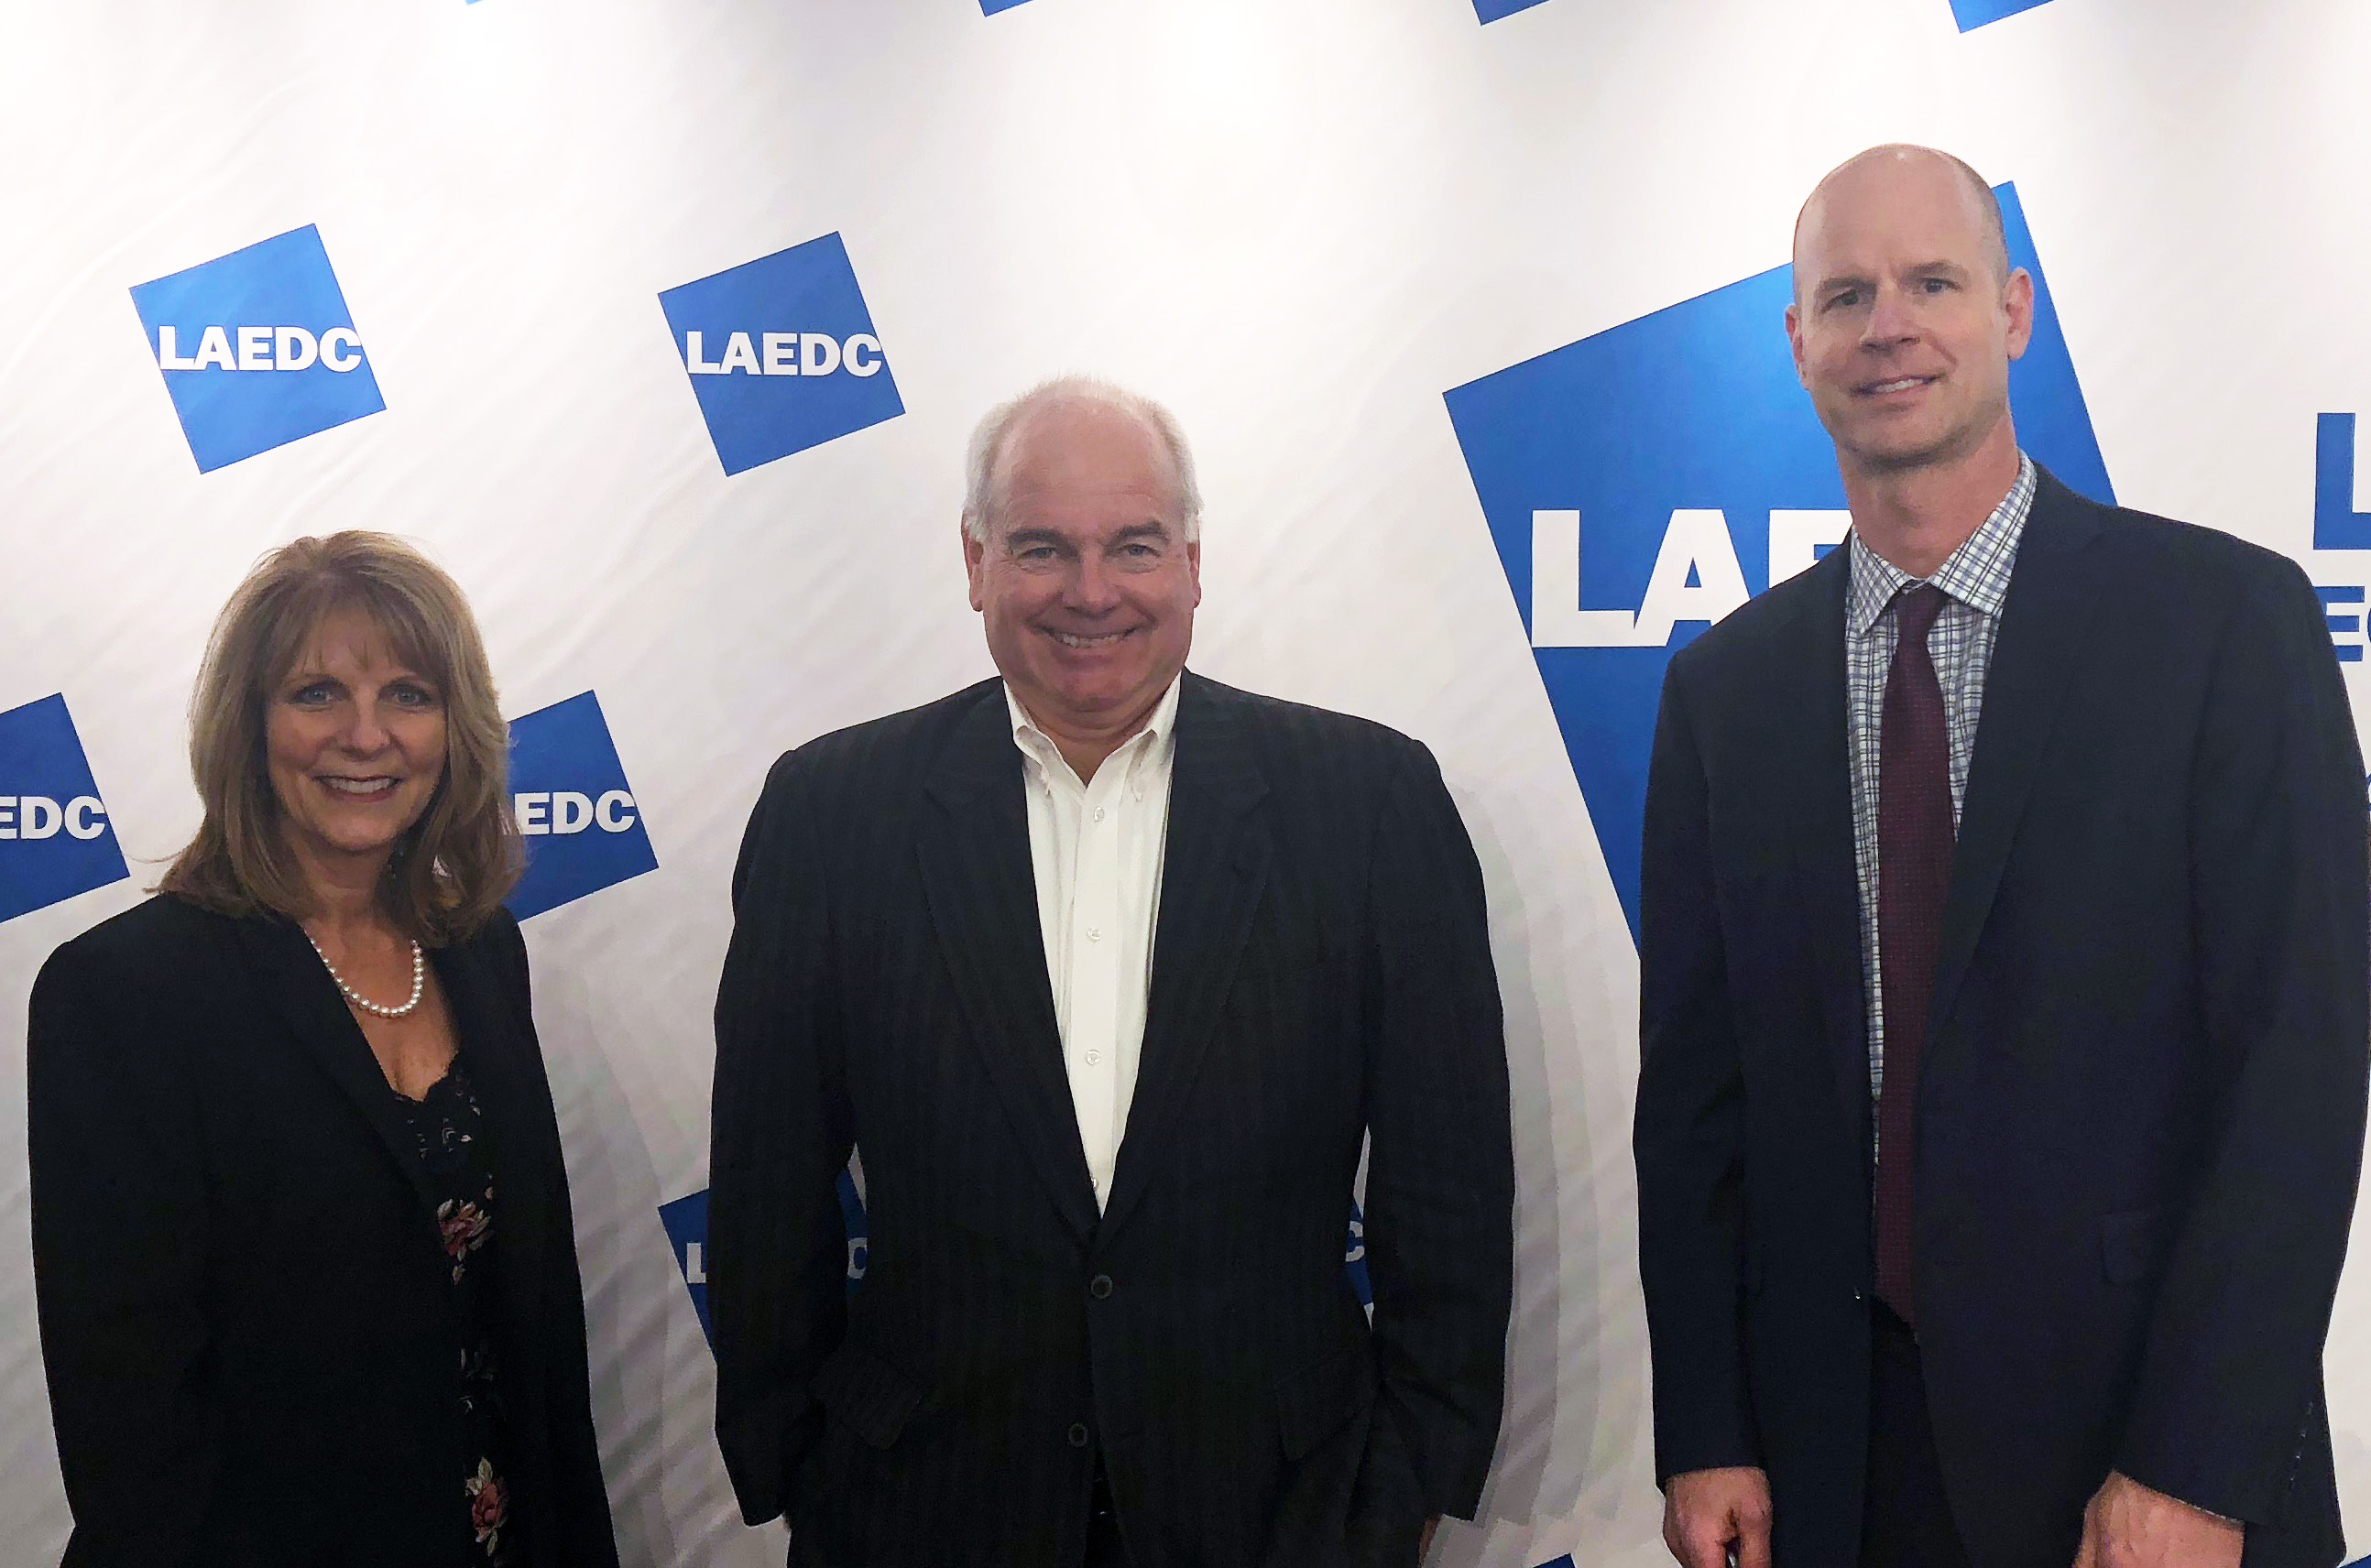 LAEDC exclusive: California's Chief Economic Advisor talks housing, incentives, investment priorities